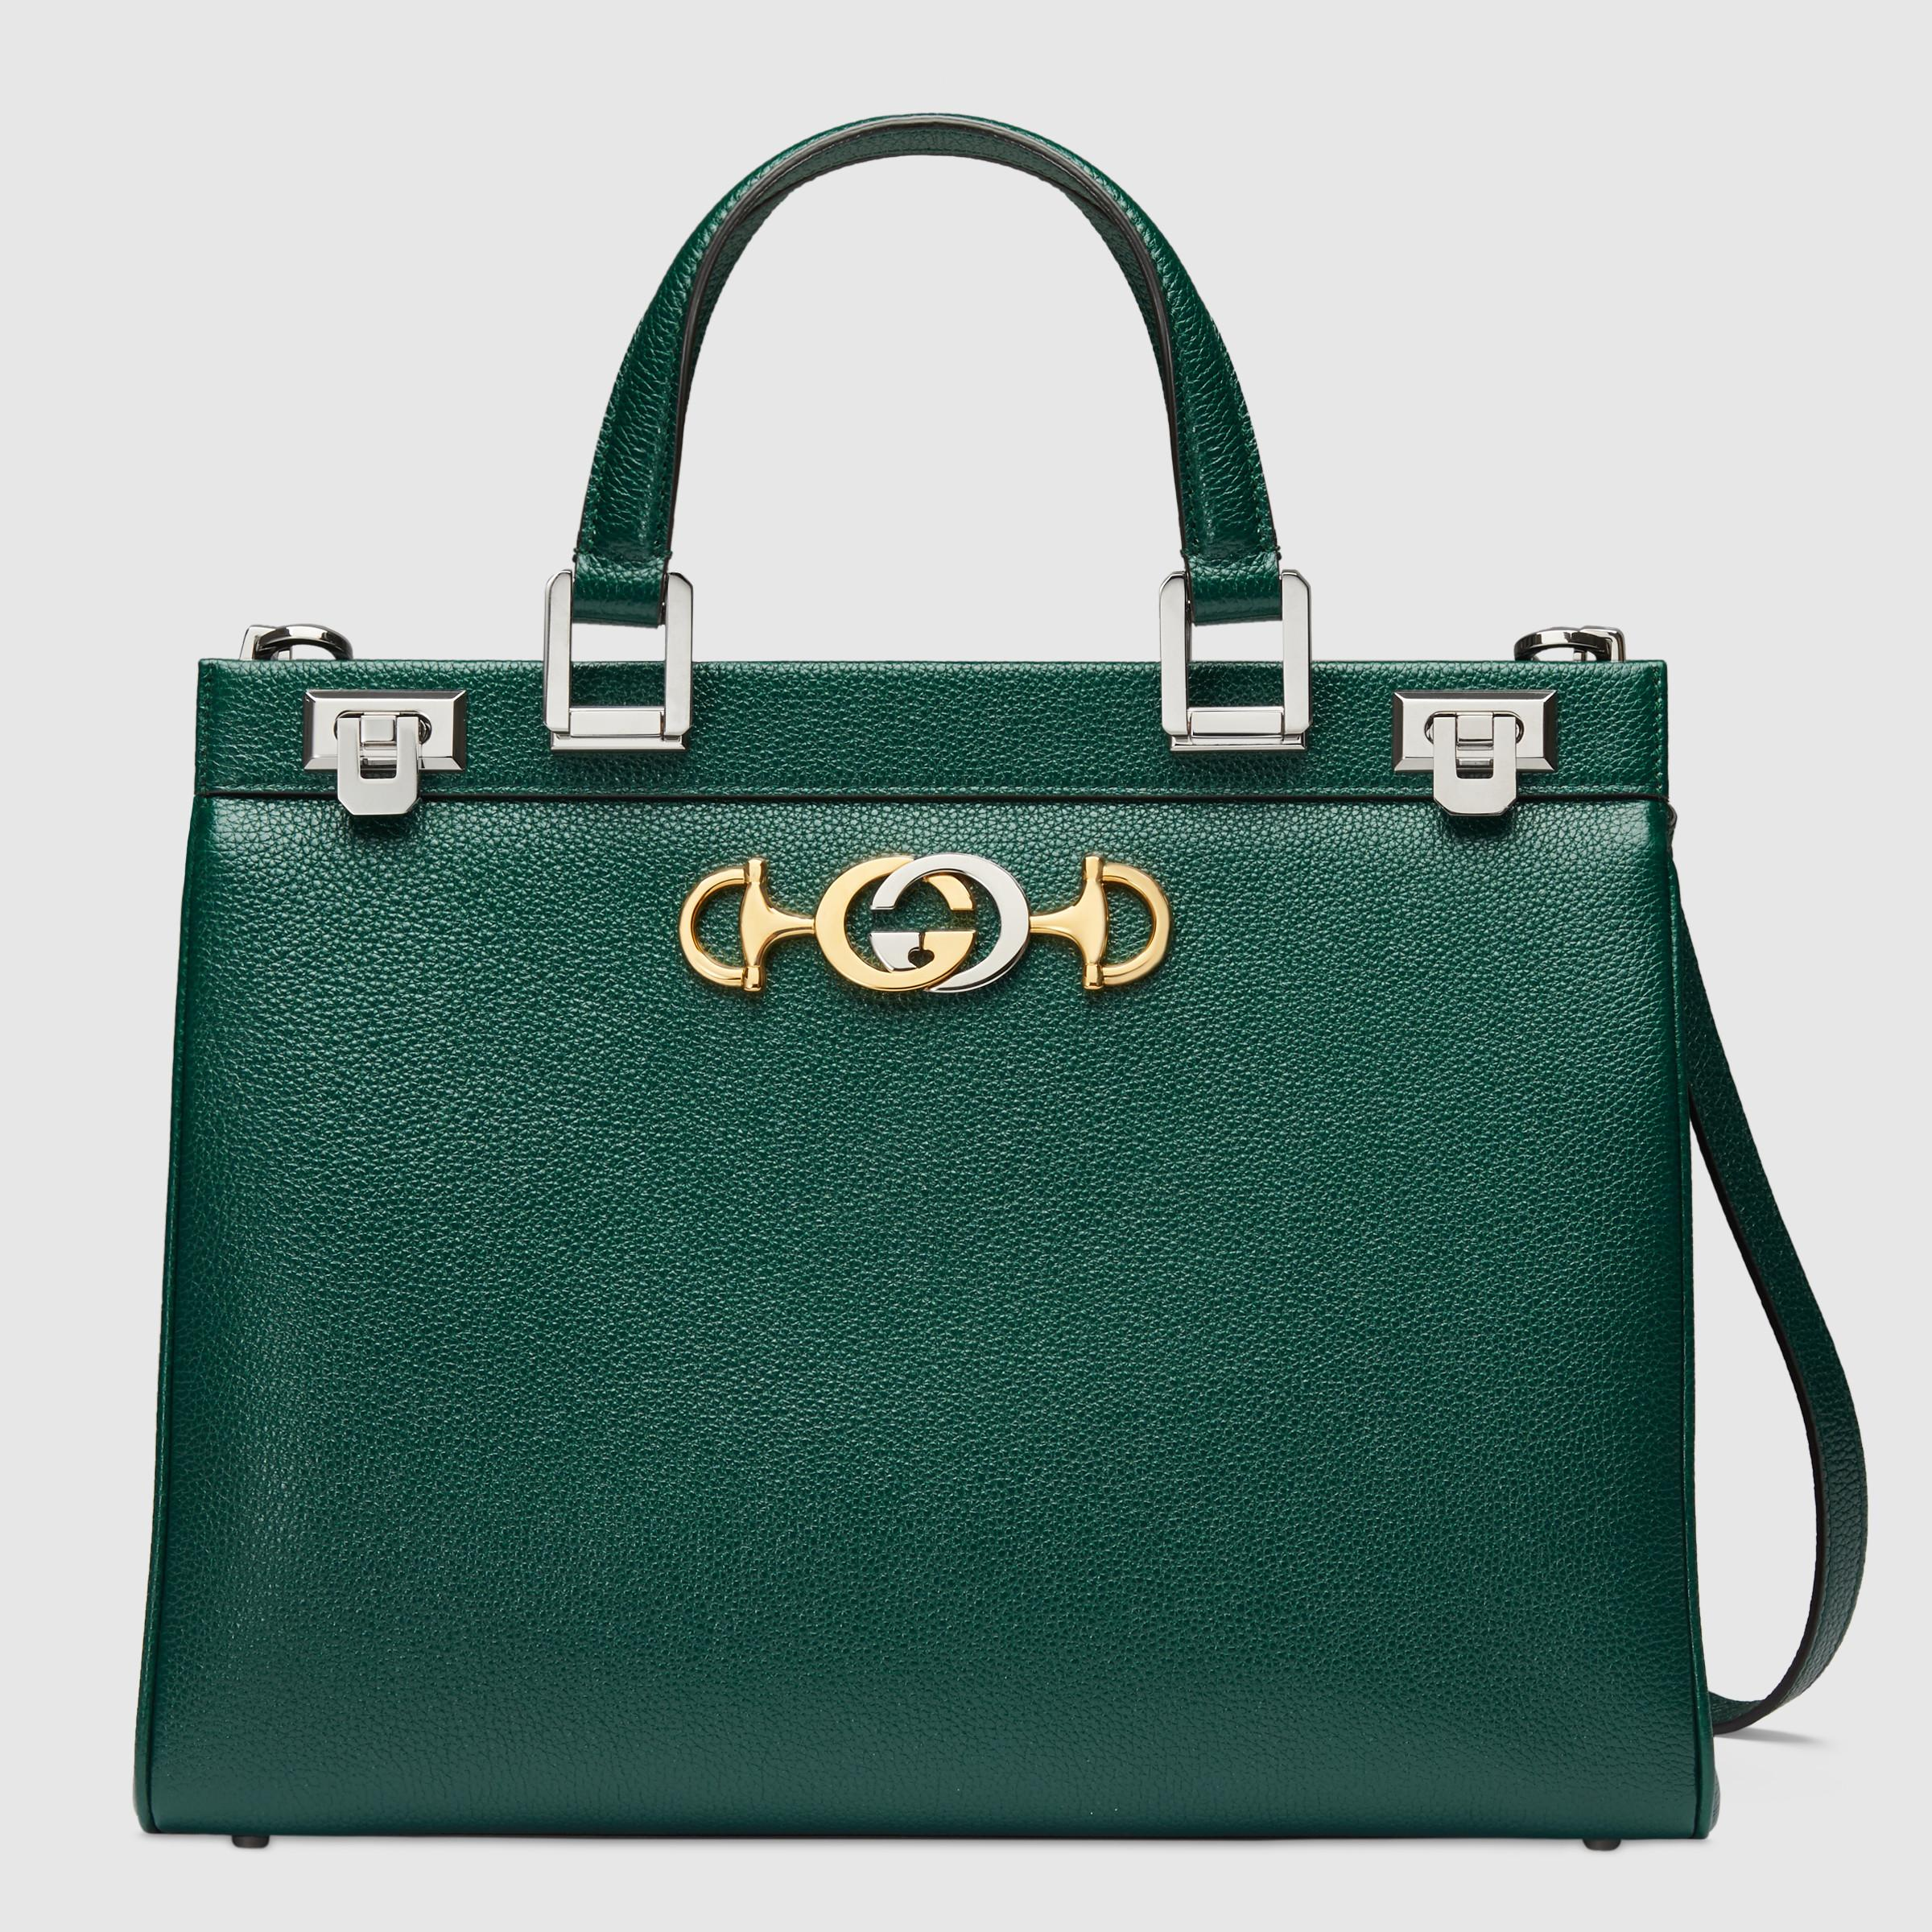 c64624c4cfd9 Tas gucci zumi hobo with handle grained calfskin original leather